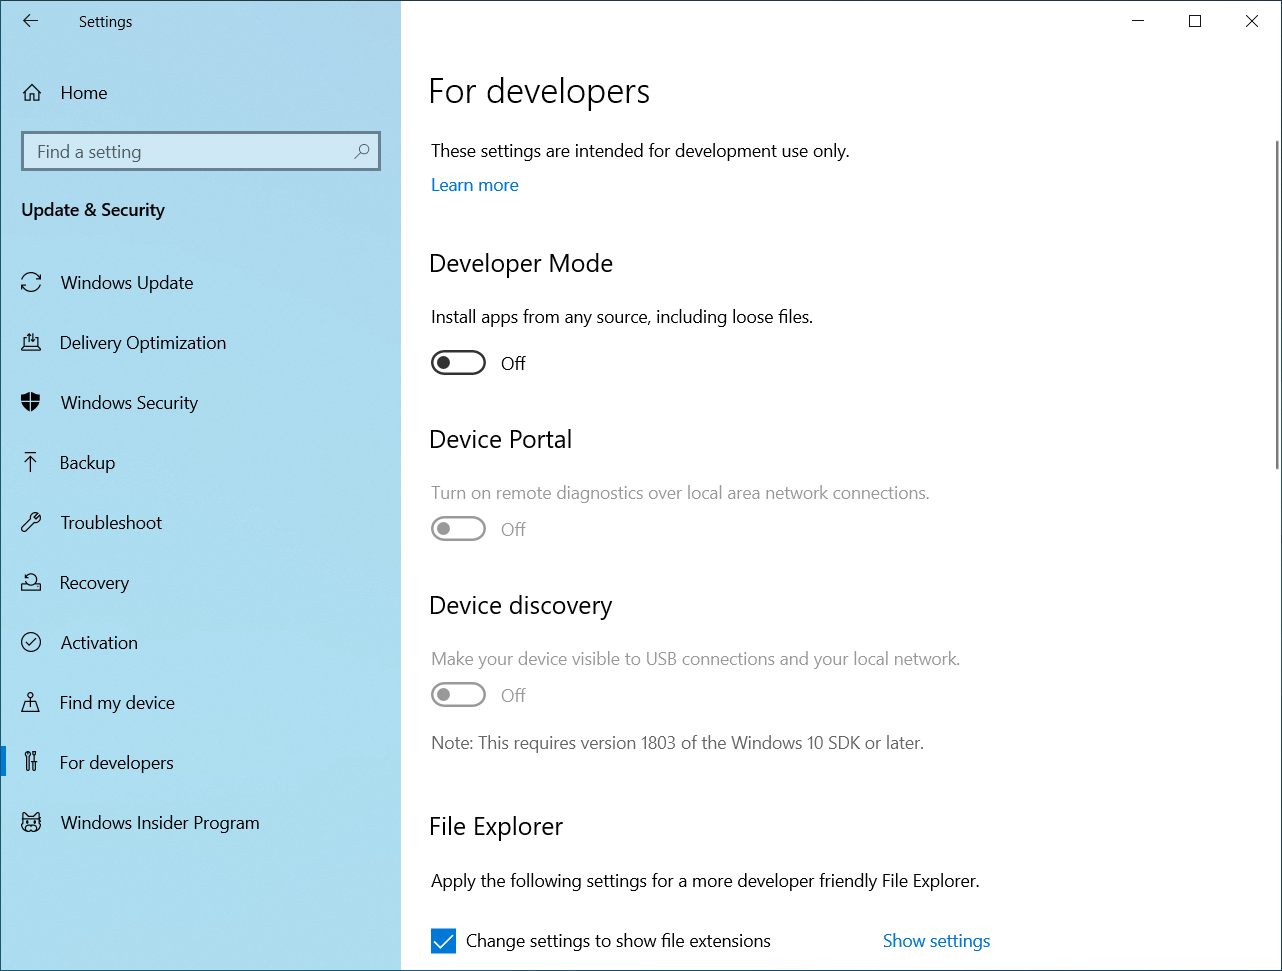 Reorganised For developers section in Windows 10 v2004